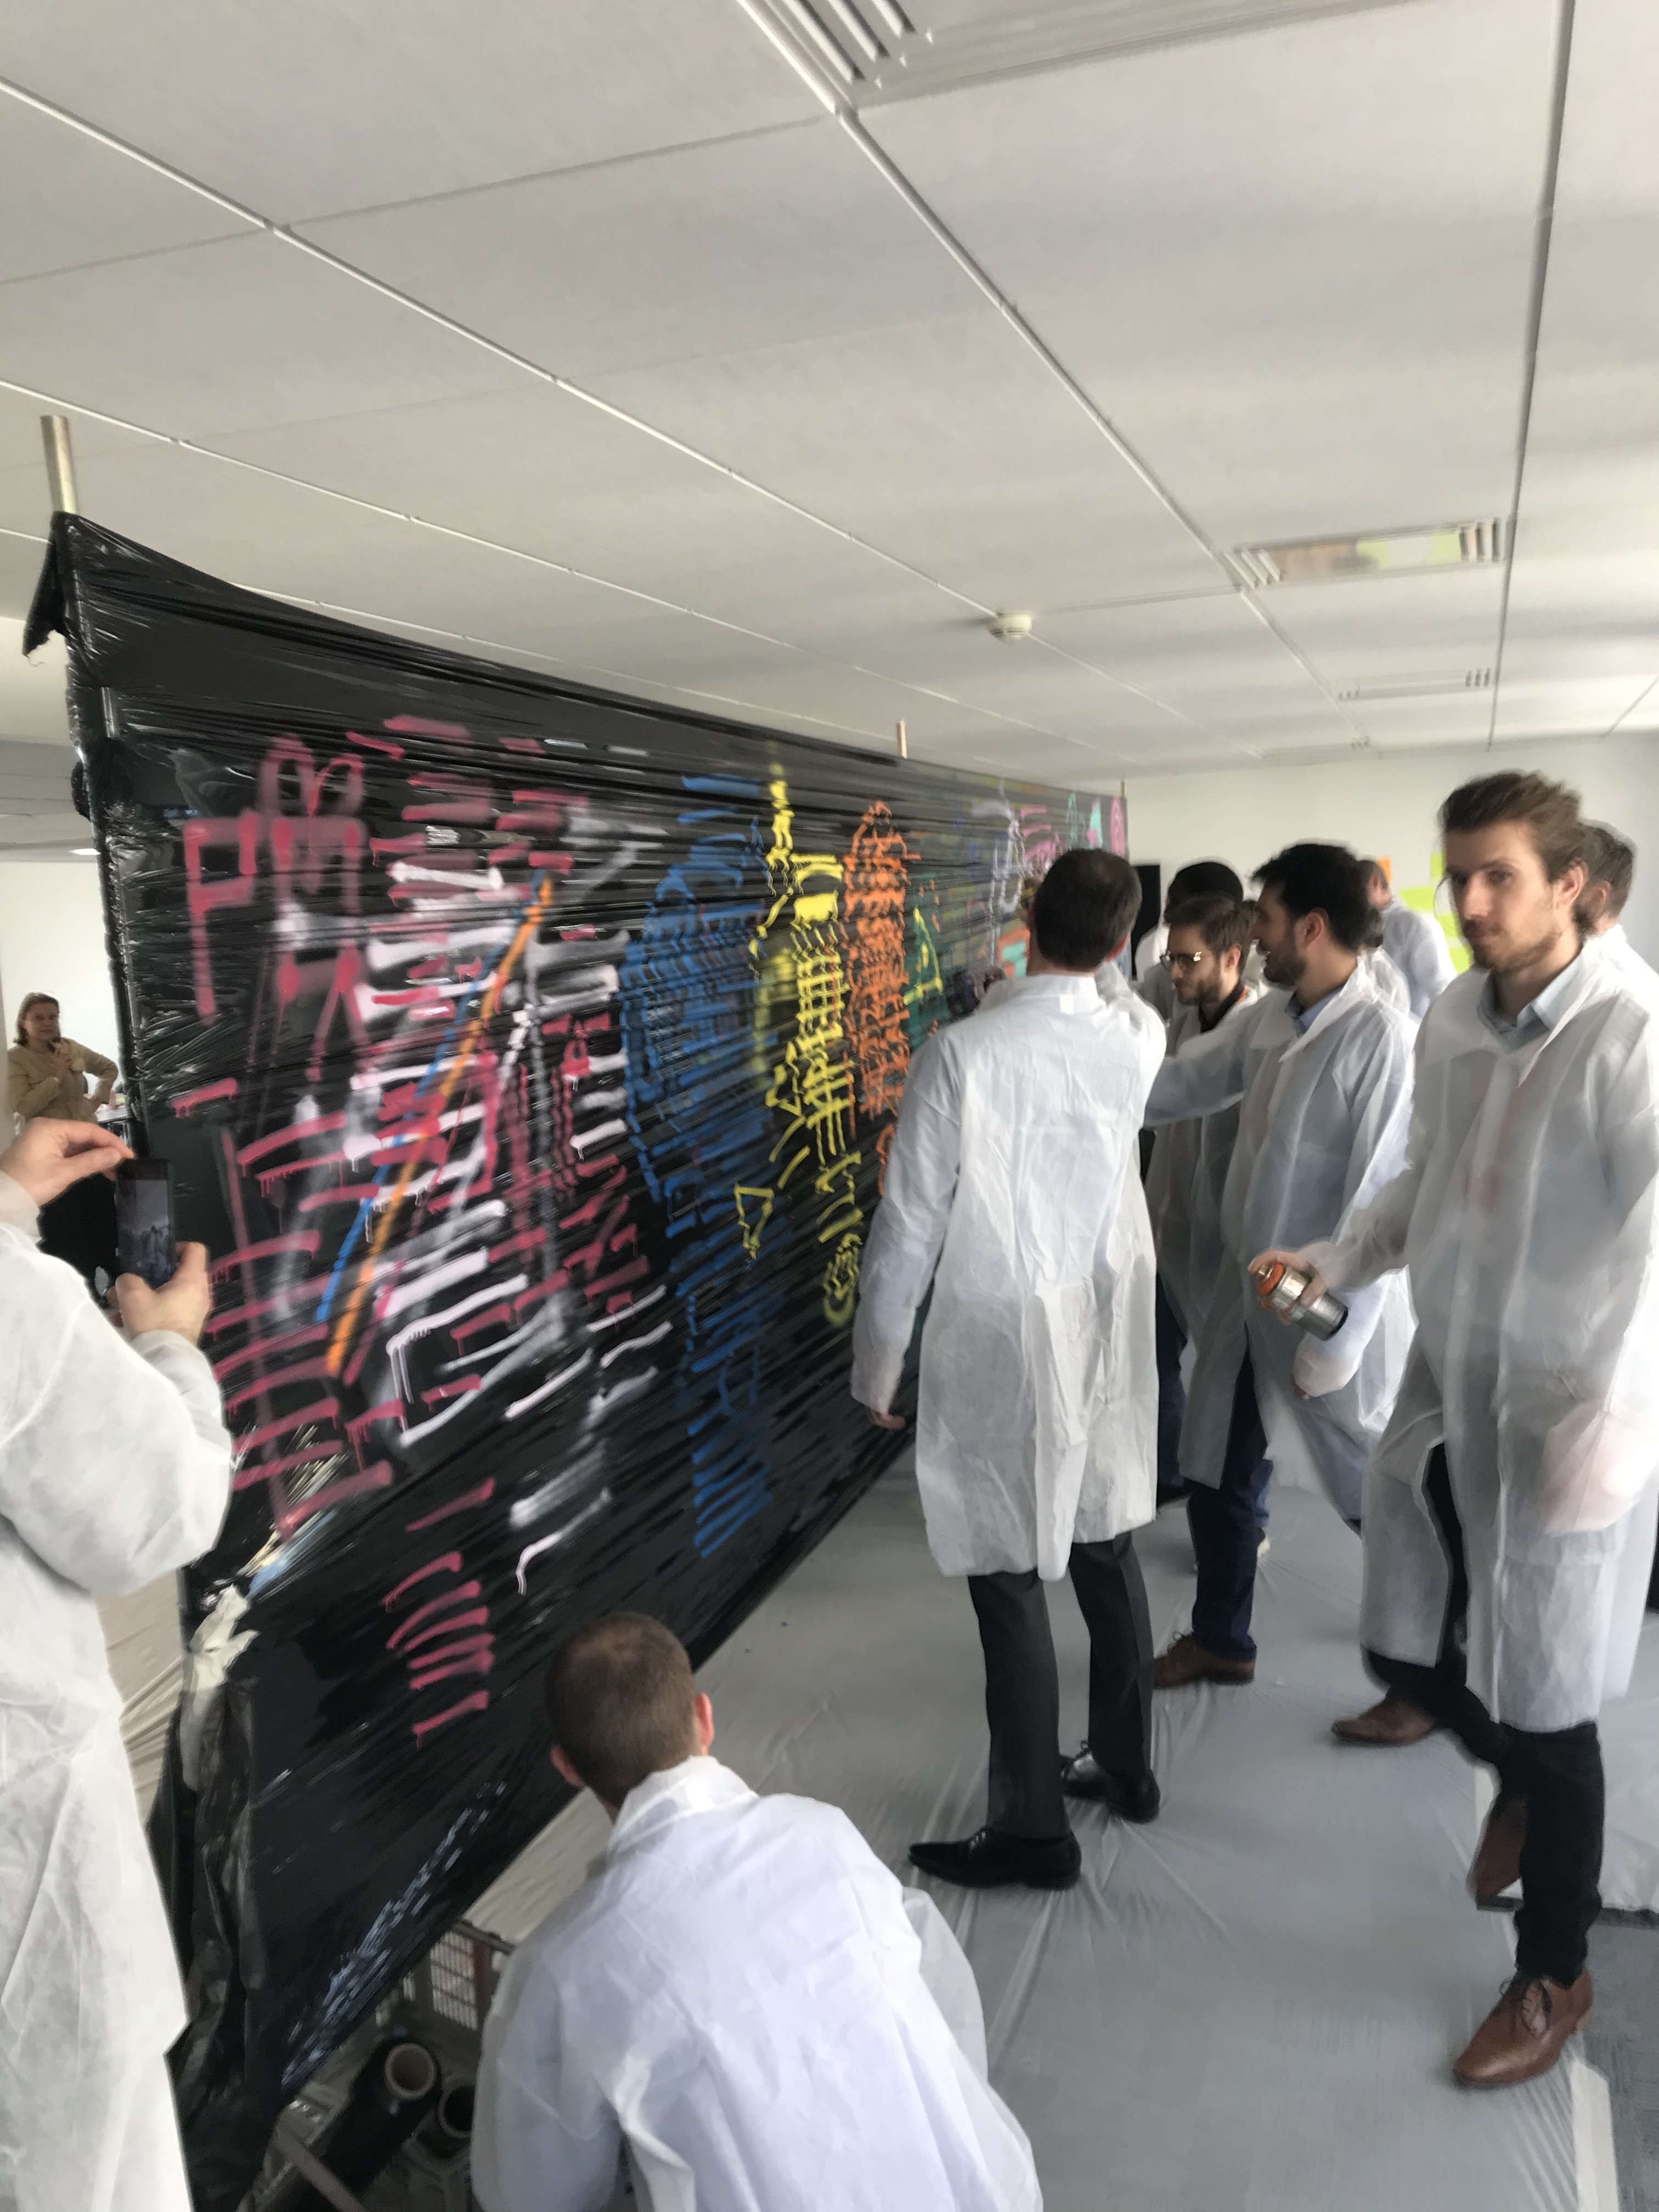 animer un teambuilding graffiti